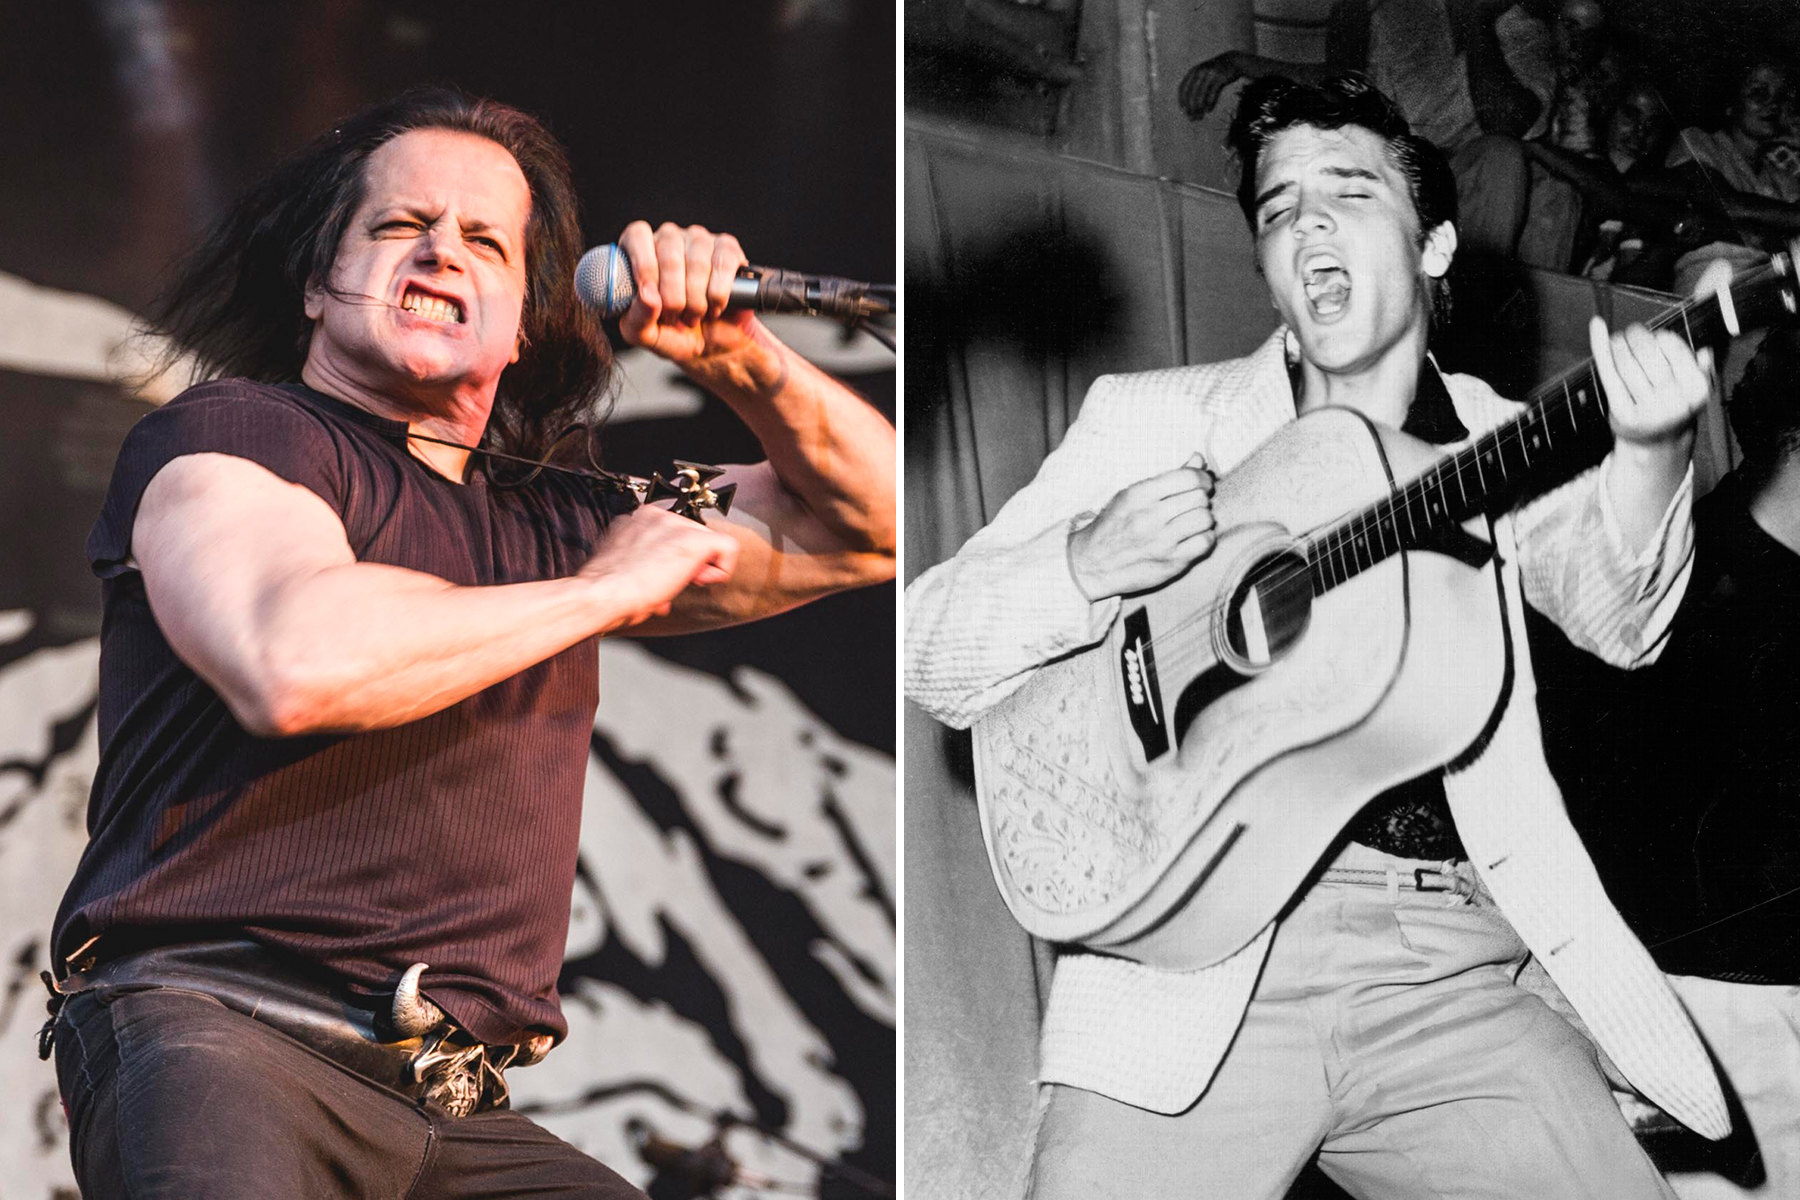 Danzig Finally Sets Release Date for Elvis Presley Covers Album